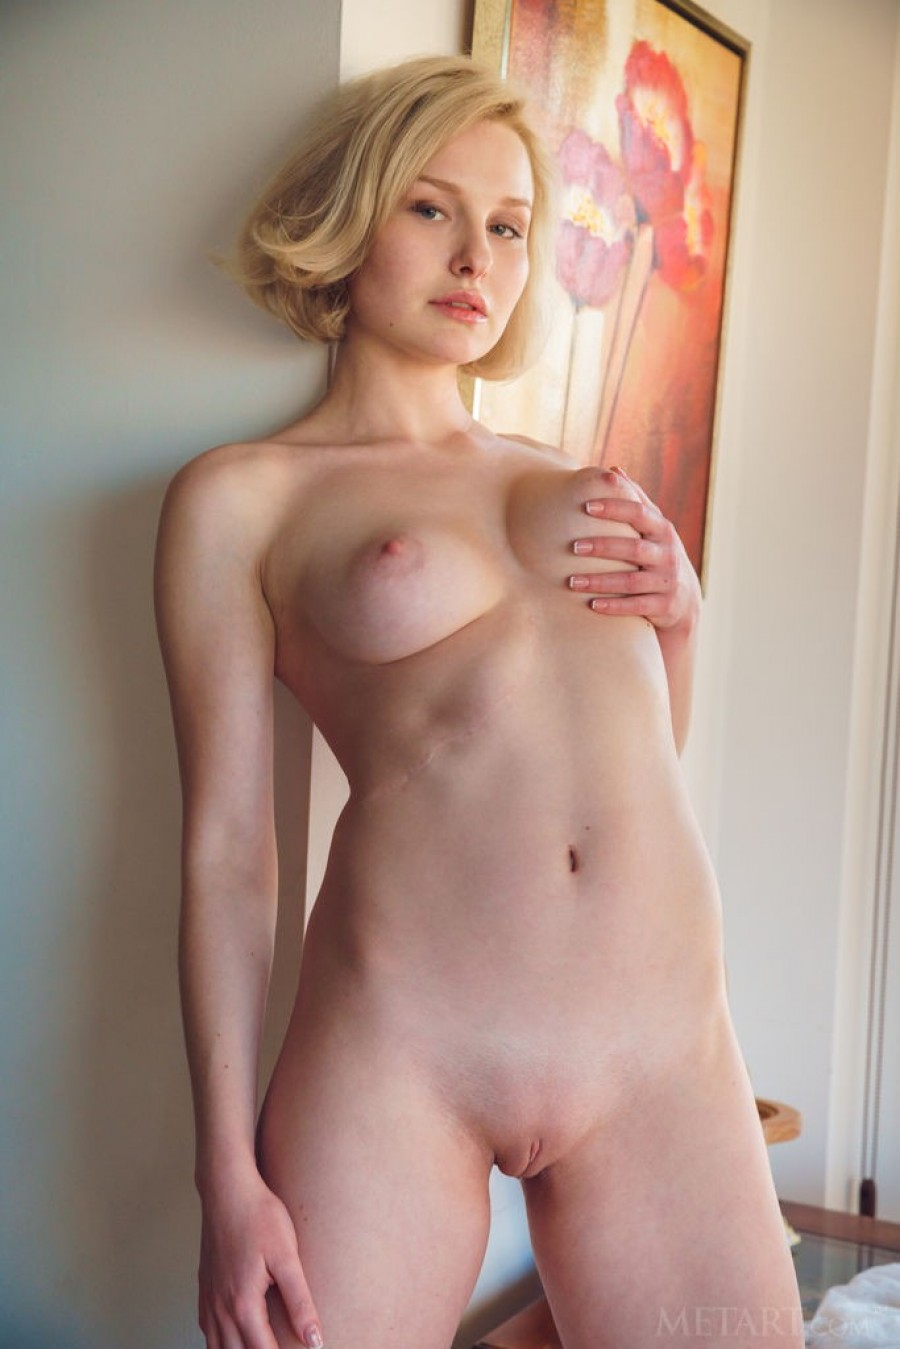 Short haired blonde with perfect tits